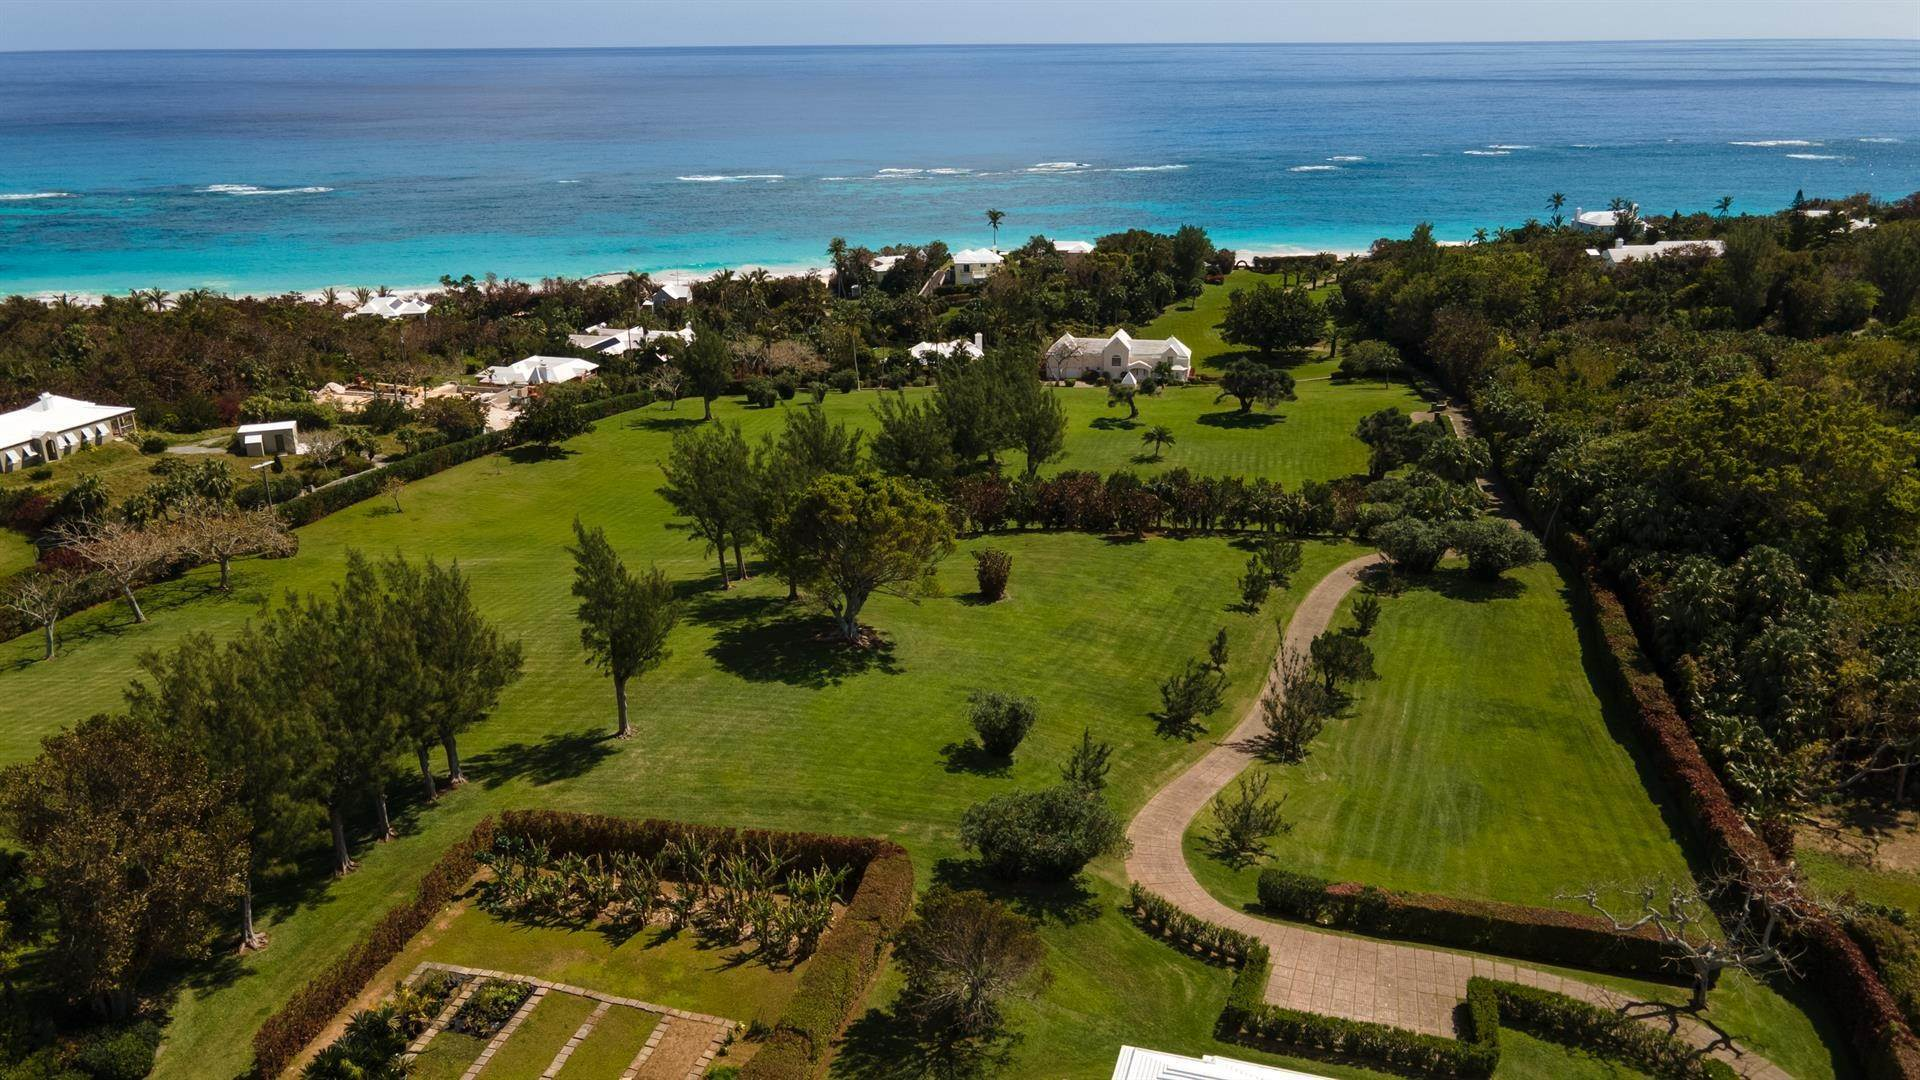 38. Aan het strand Property voor Verkoop op Chelston on Grape Bay Beach Chelston on Grape Bay Beach, 12 Grape Bay Drive,Bermuda – Sinclair Realty